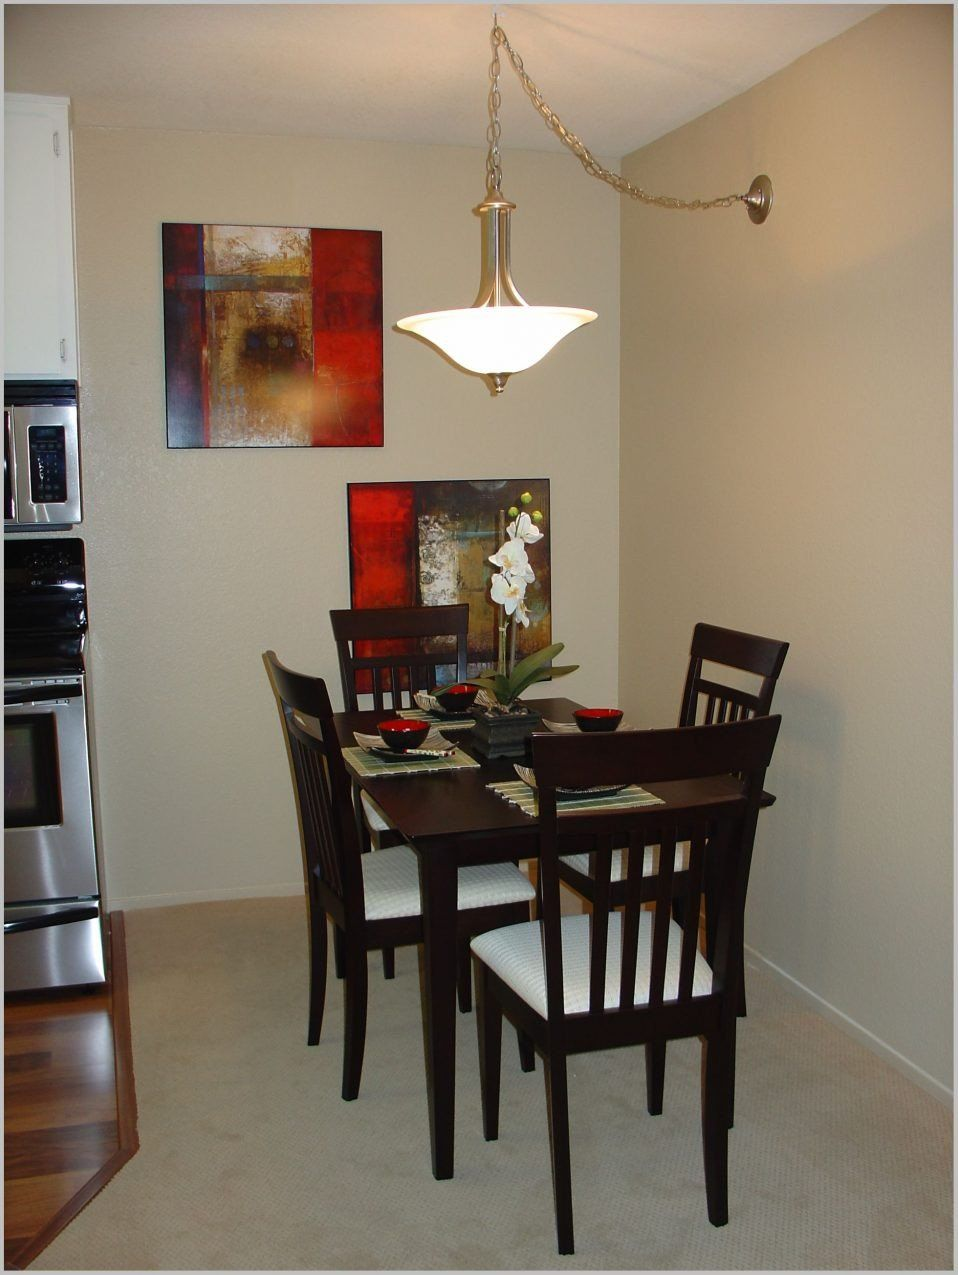 Small Modern Dining Room Set Home And Interior Ideas Great Dining Room Wall Decor With In 2020 Dining Room Small Small Dining Room Decor Small Dining Room Set